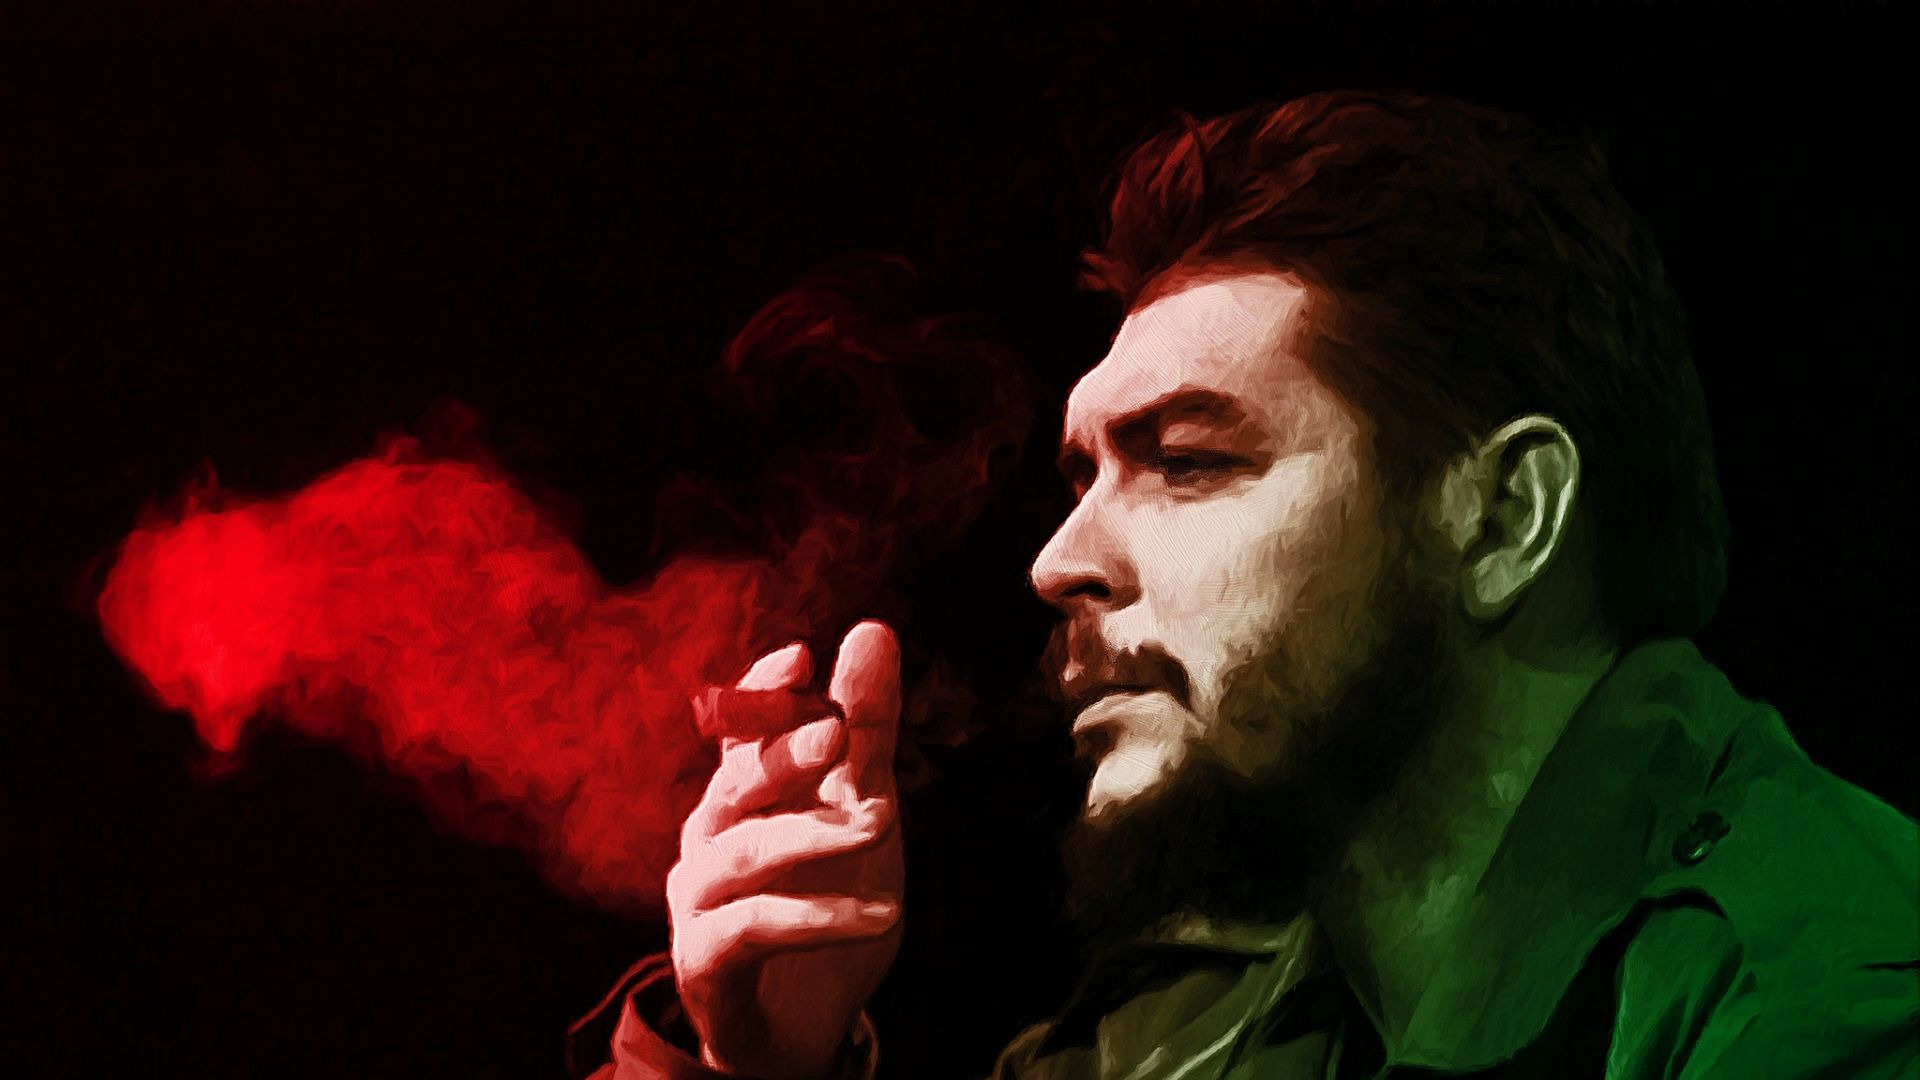 Full Hd 1080p Che Guevara Wallpapers Hd Desktop Backgrounds Che